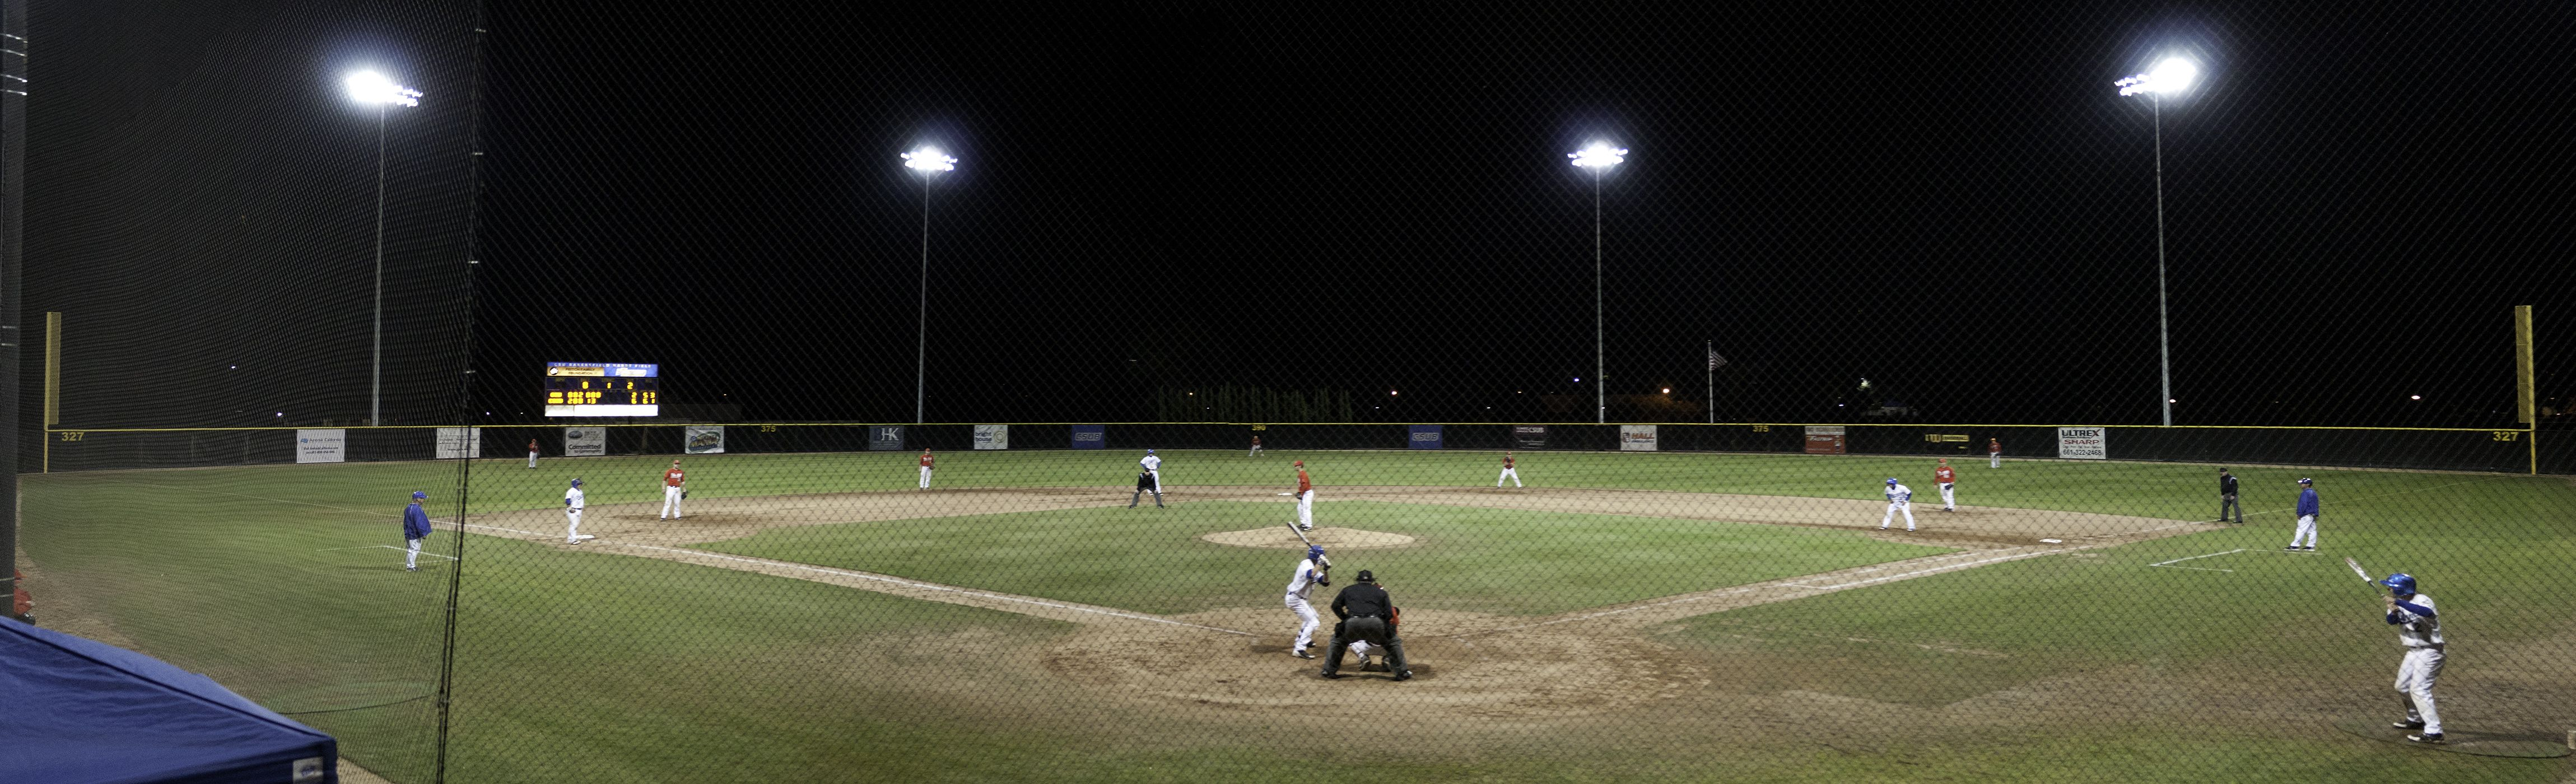 A Panoramic Shot Of Csub Baseball S Hardt Field Home To The Runners Since The Program S Inception In 2009 Thanks To A Generous Natural Grass Panoramic Field